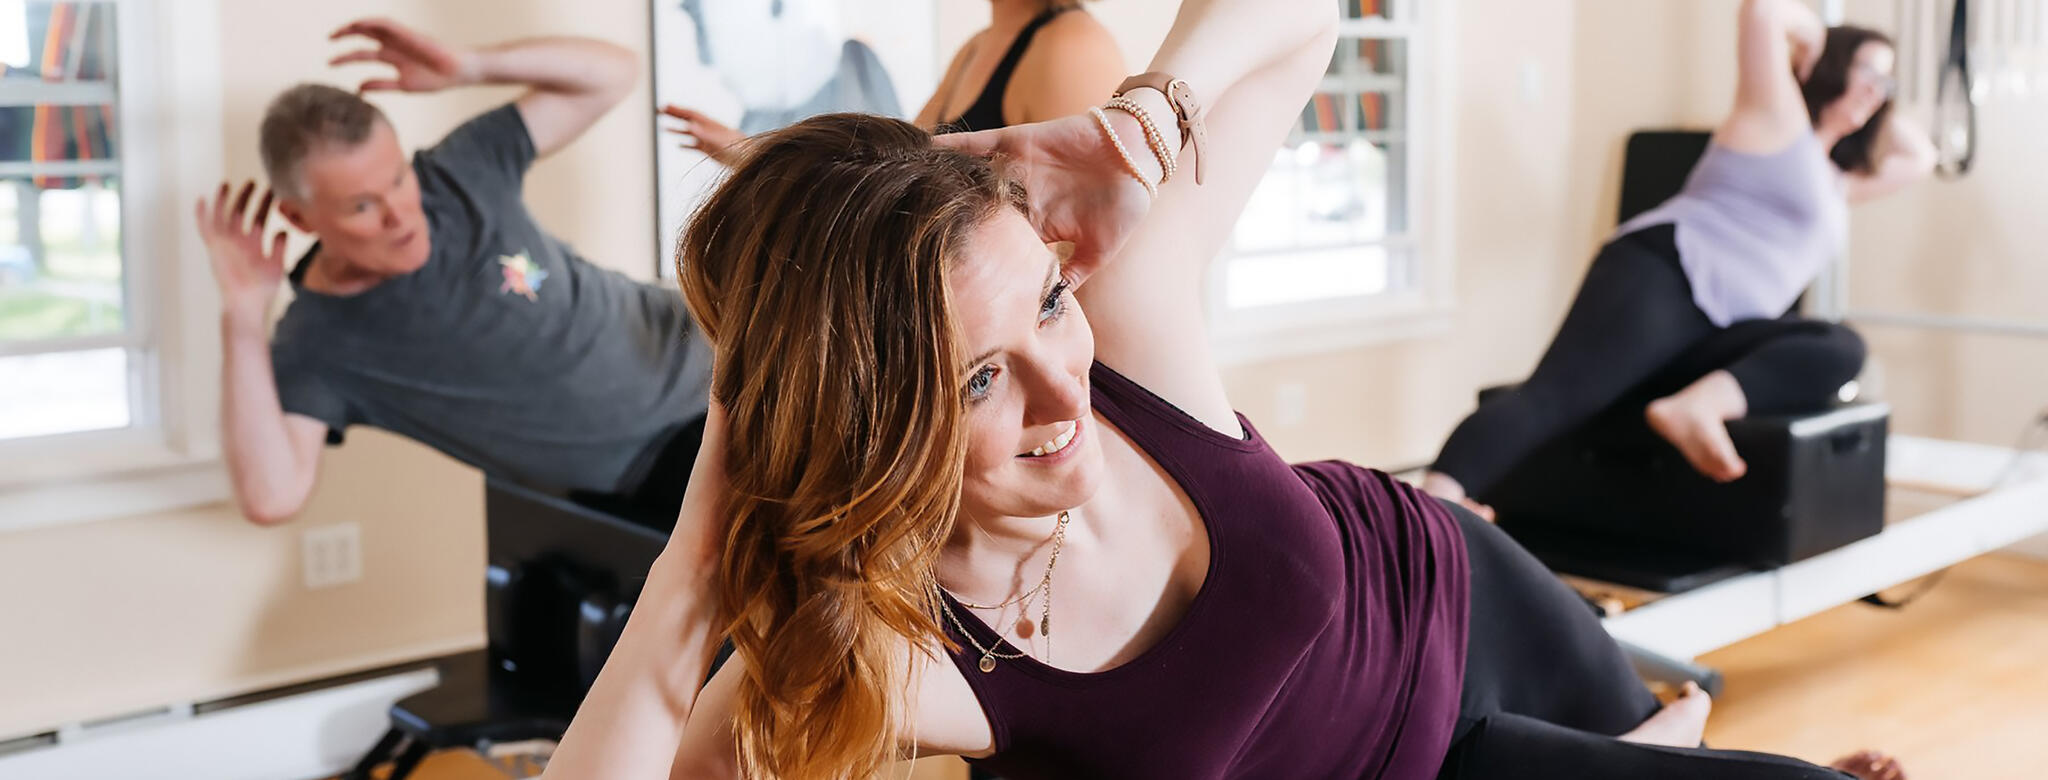 Laurie Johnson taking Pilates at The Studio in Hadley